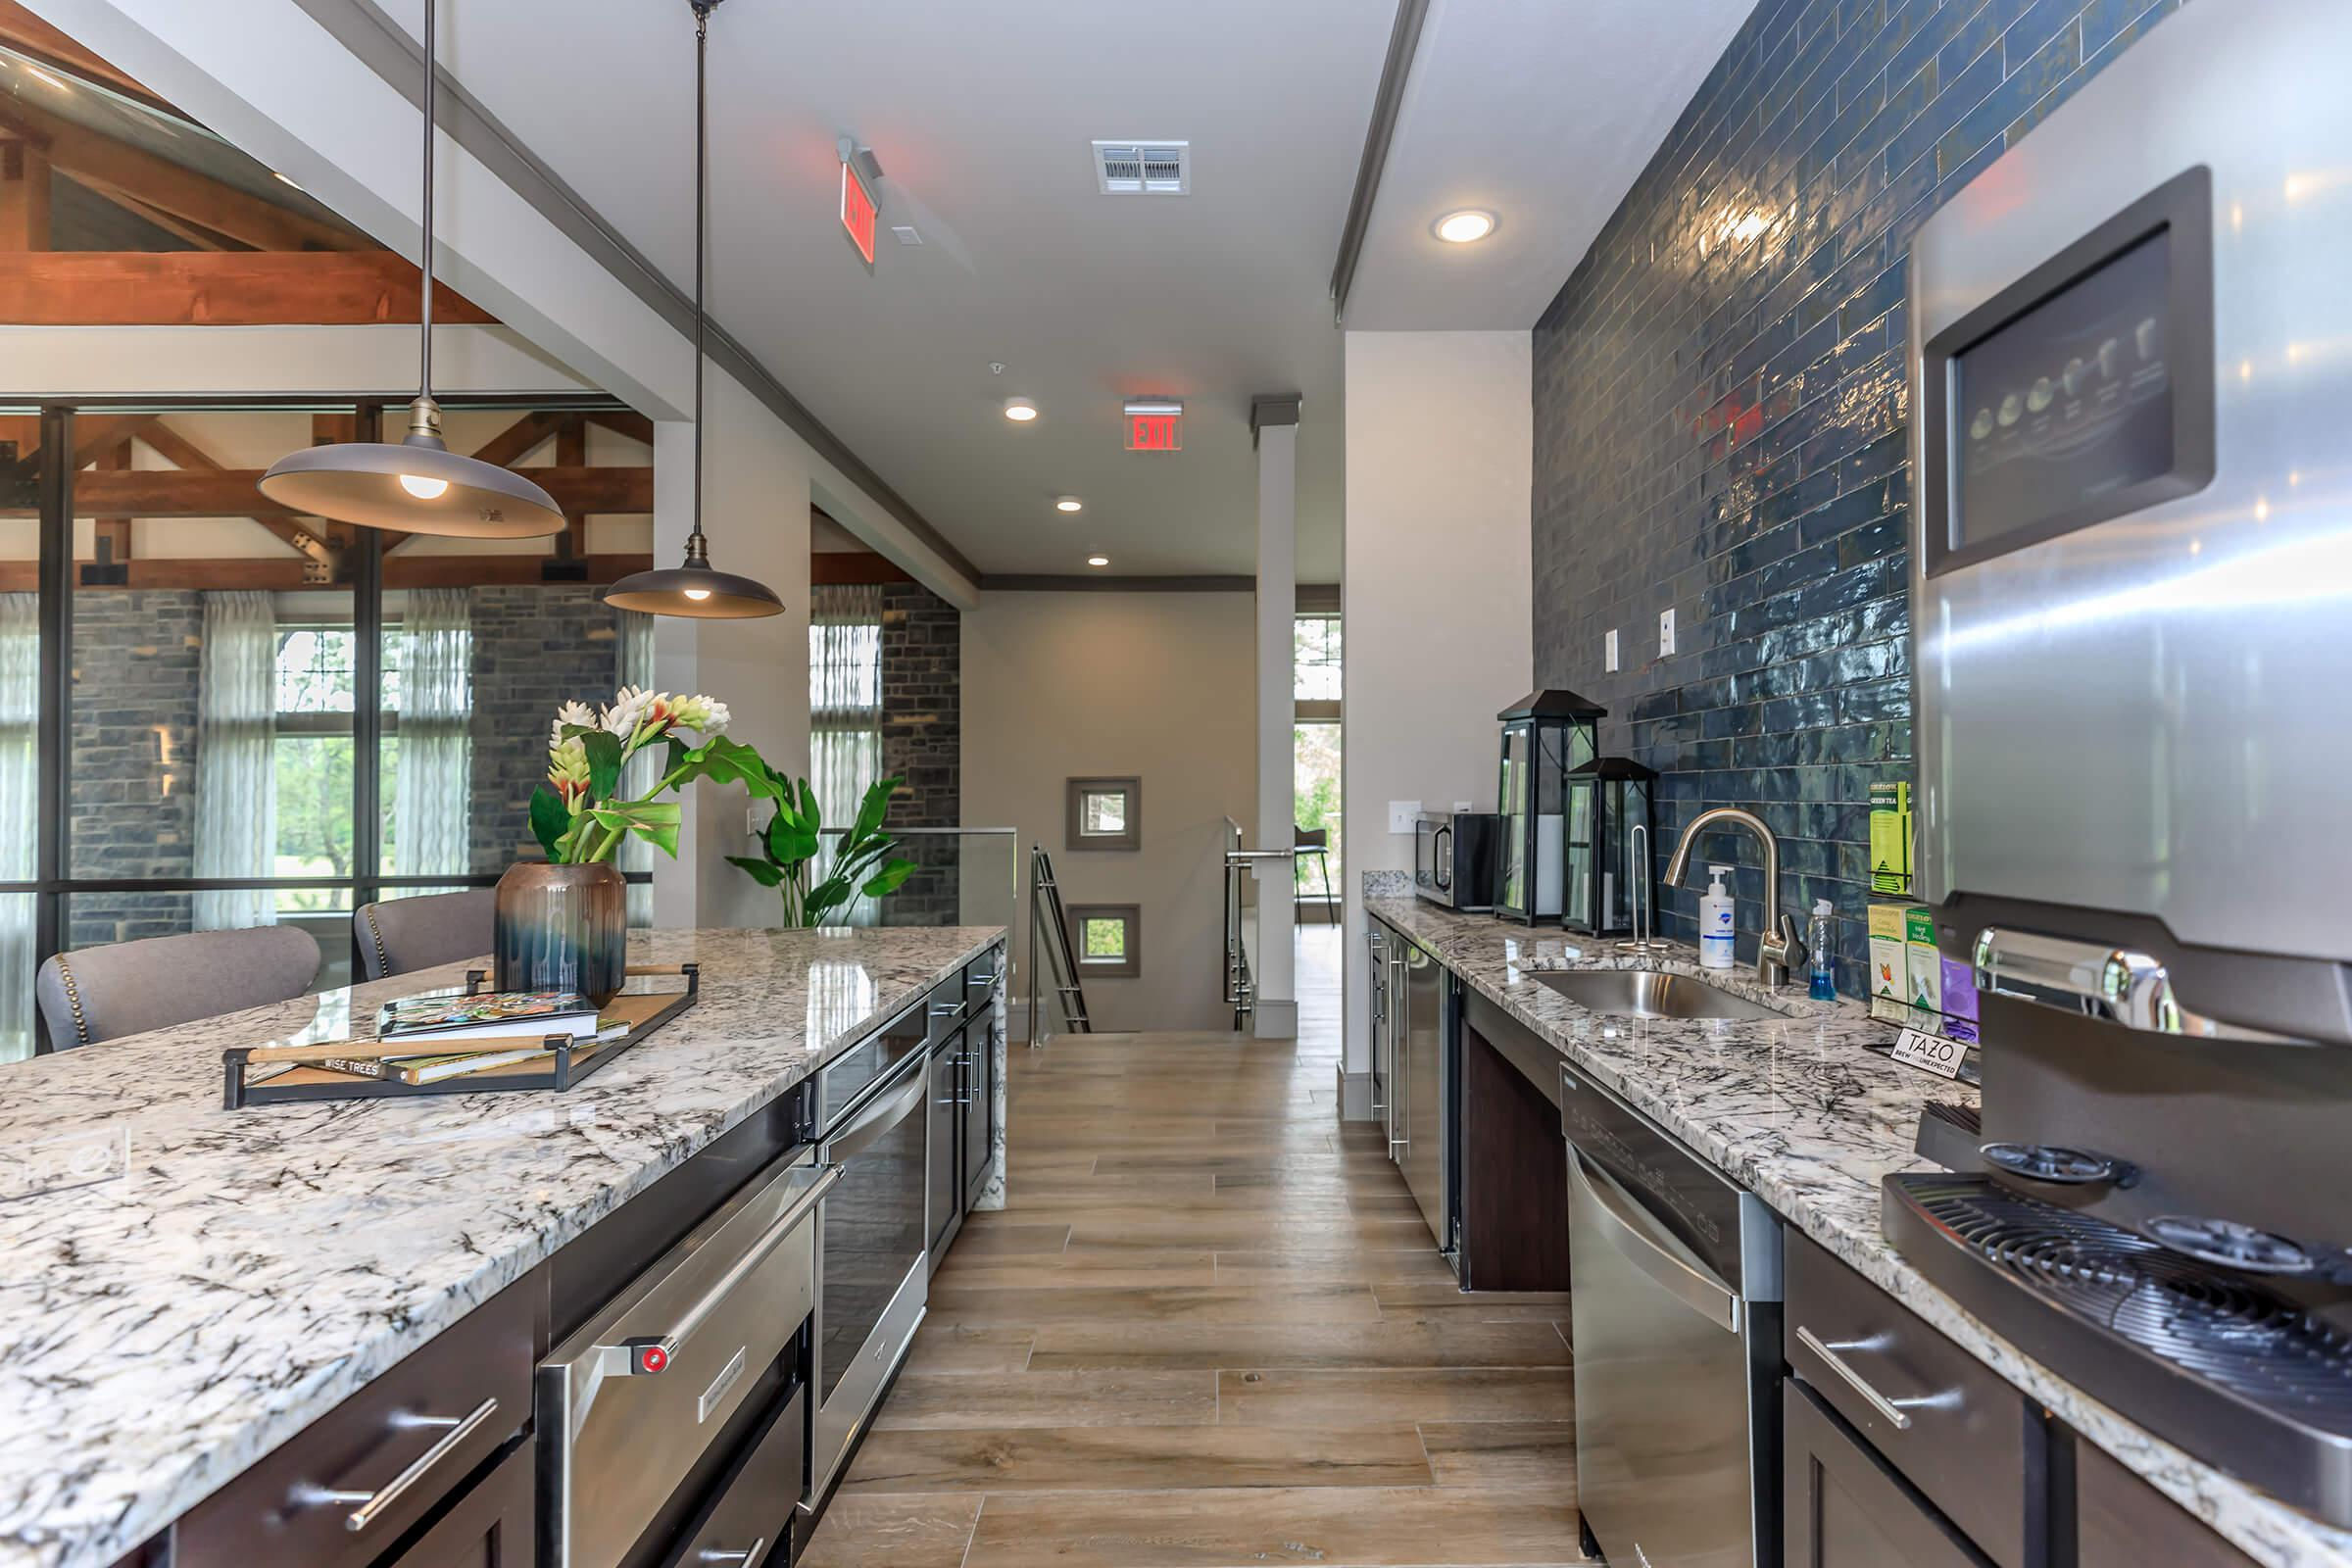 Luxury clubhouse kitchen with stainless steel appliances and